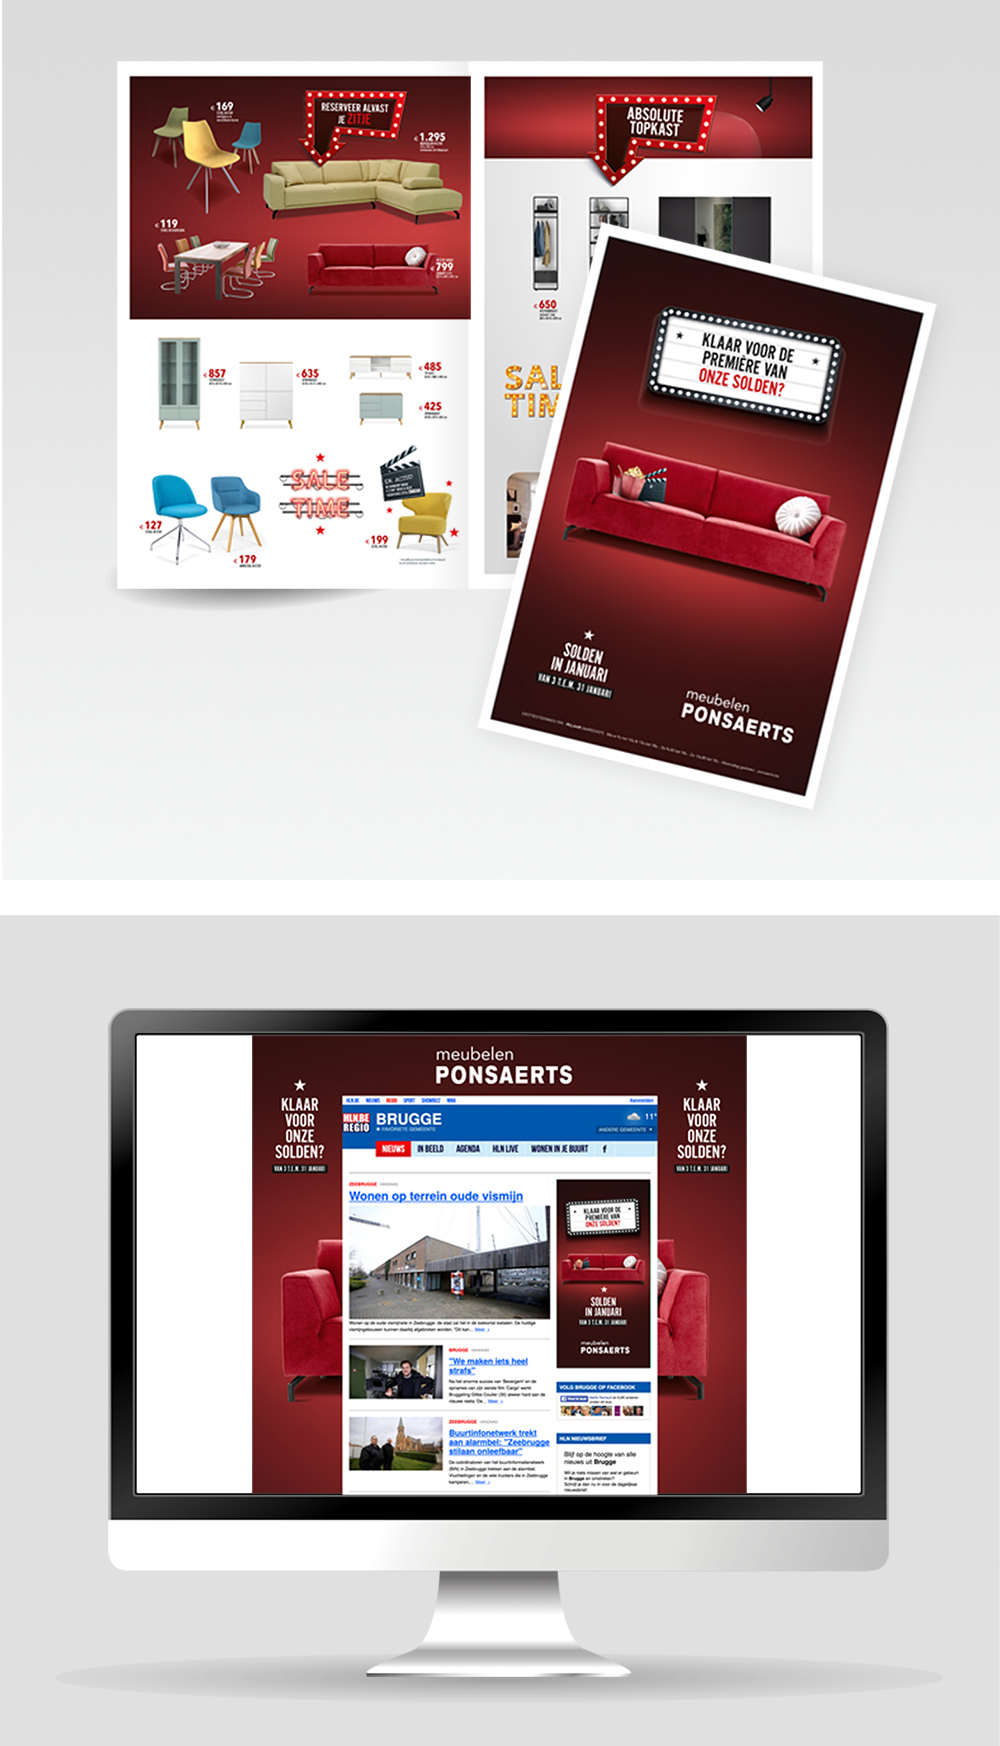 Online campagne Ponsaerts